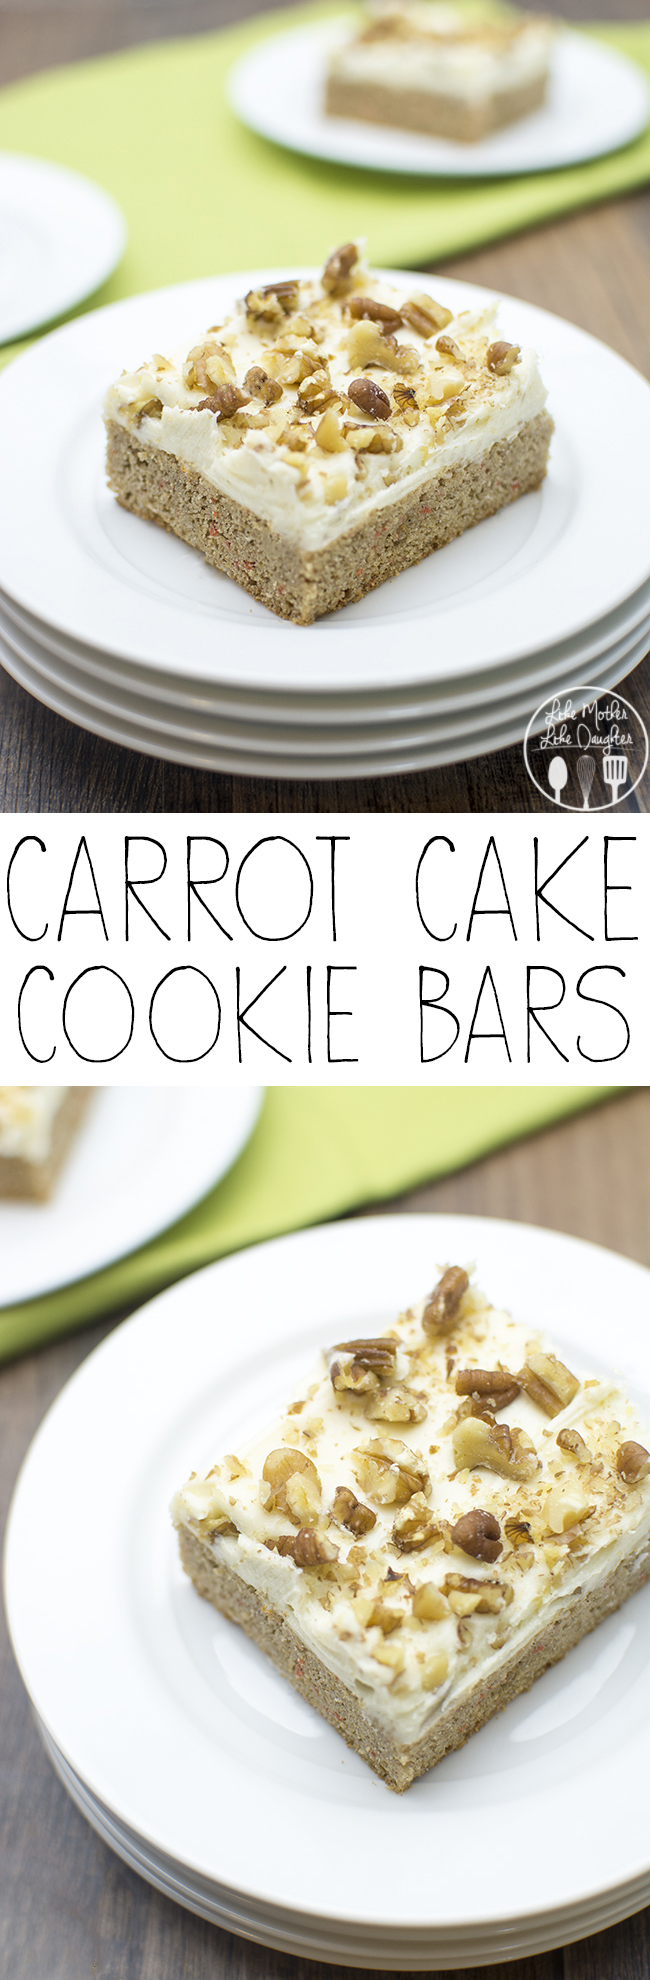 Carrot Cake Cookie Bars - these delicious and easy to make cookie bars start with a cake mix, for a spiced carrot cake topped with creamy cream cheese frosting and crunchy nuts..